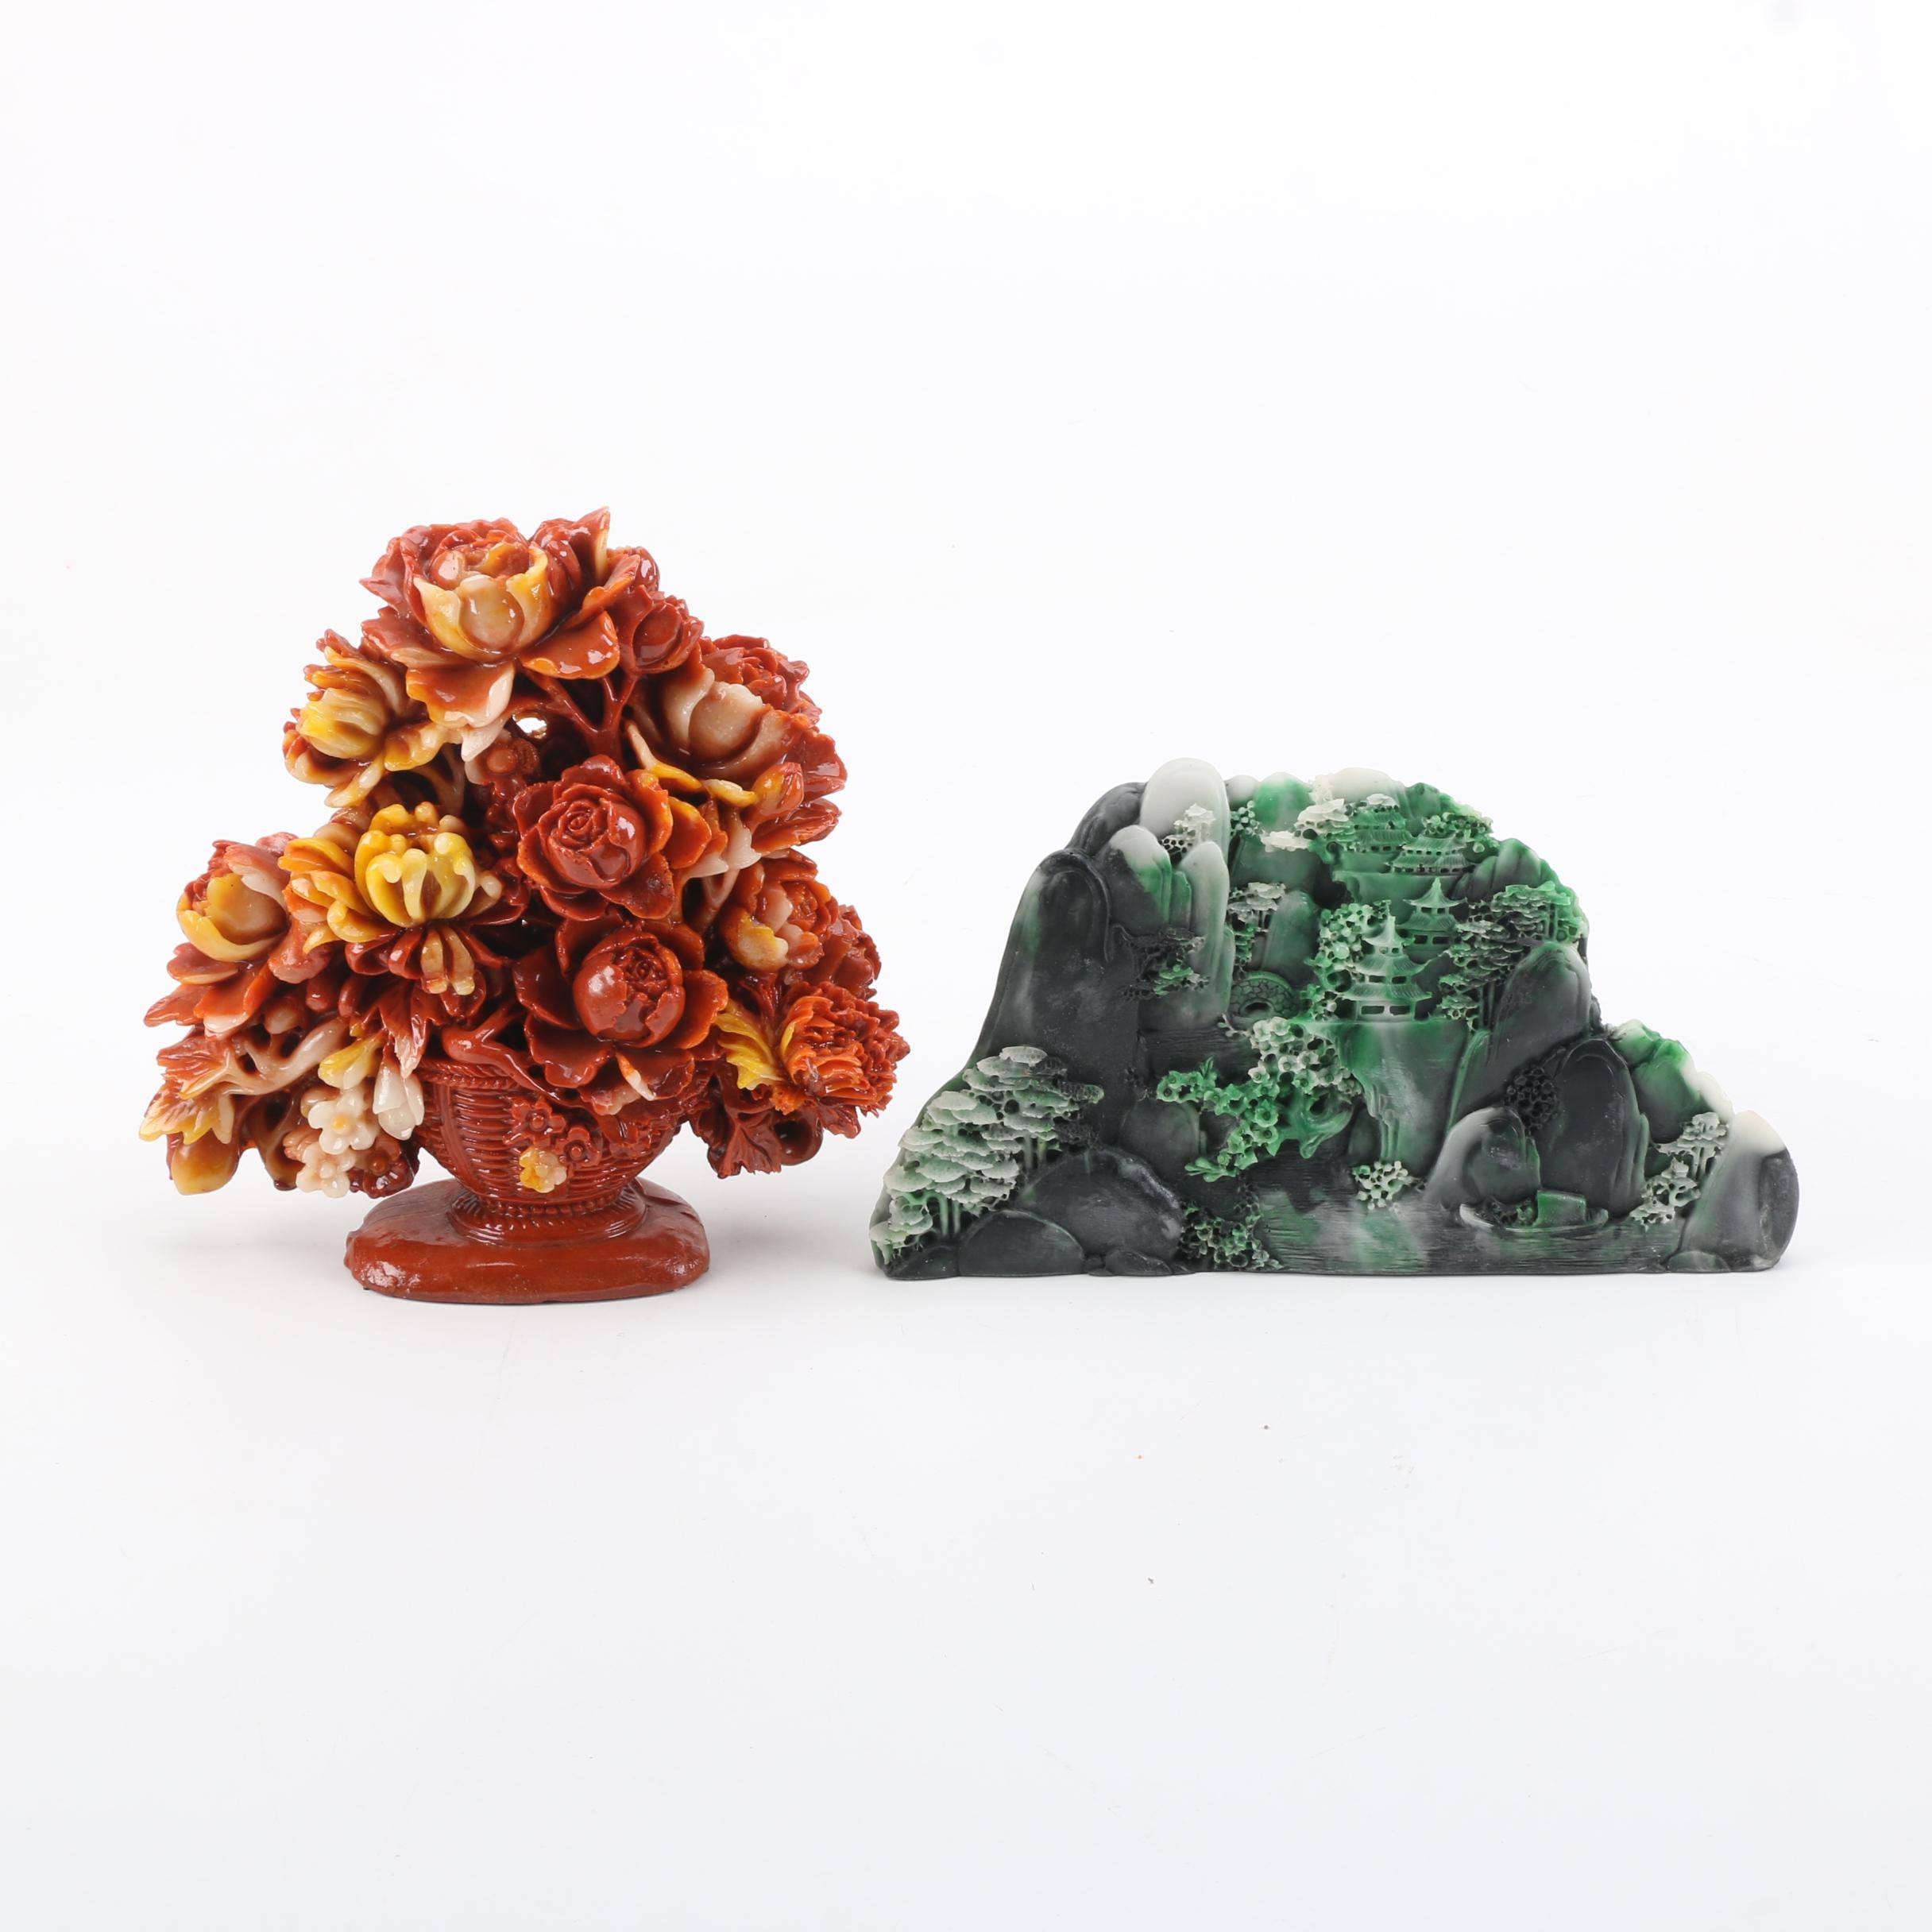 Decorative Chinese Resin Figurines